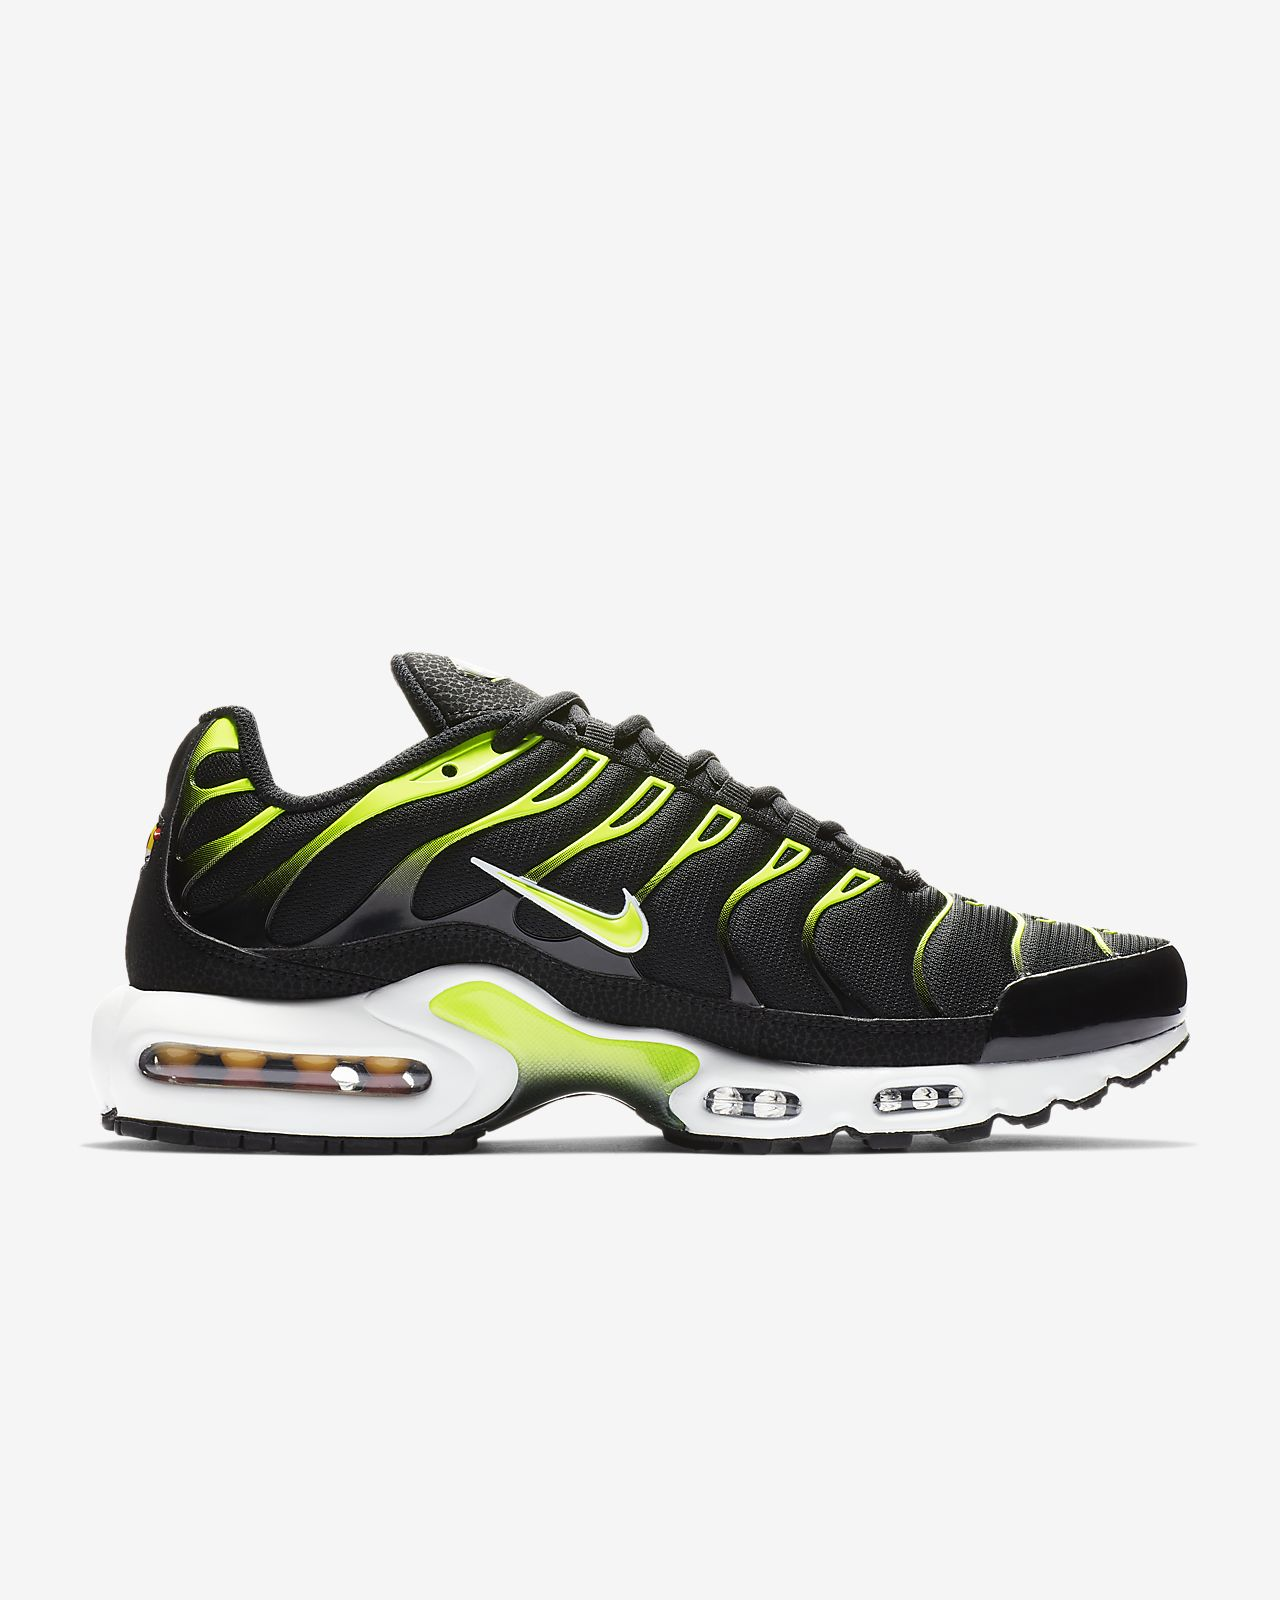 8263884c4f Nike Air Max Plus Men's Shoe. Nike.com GB